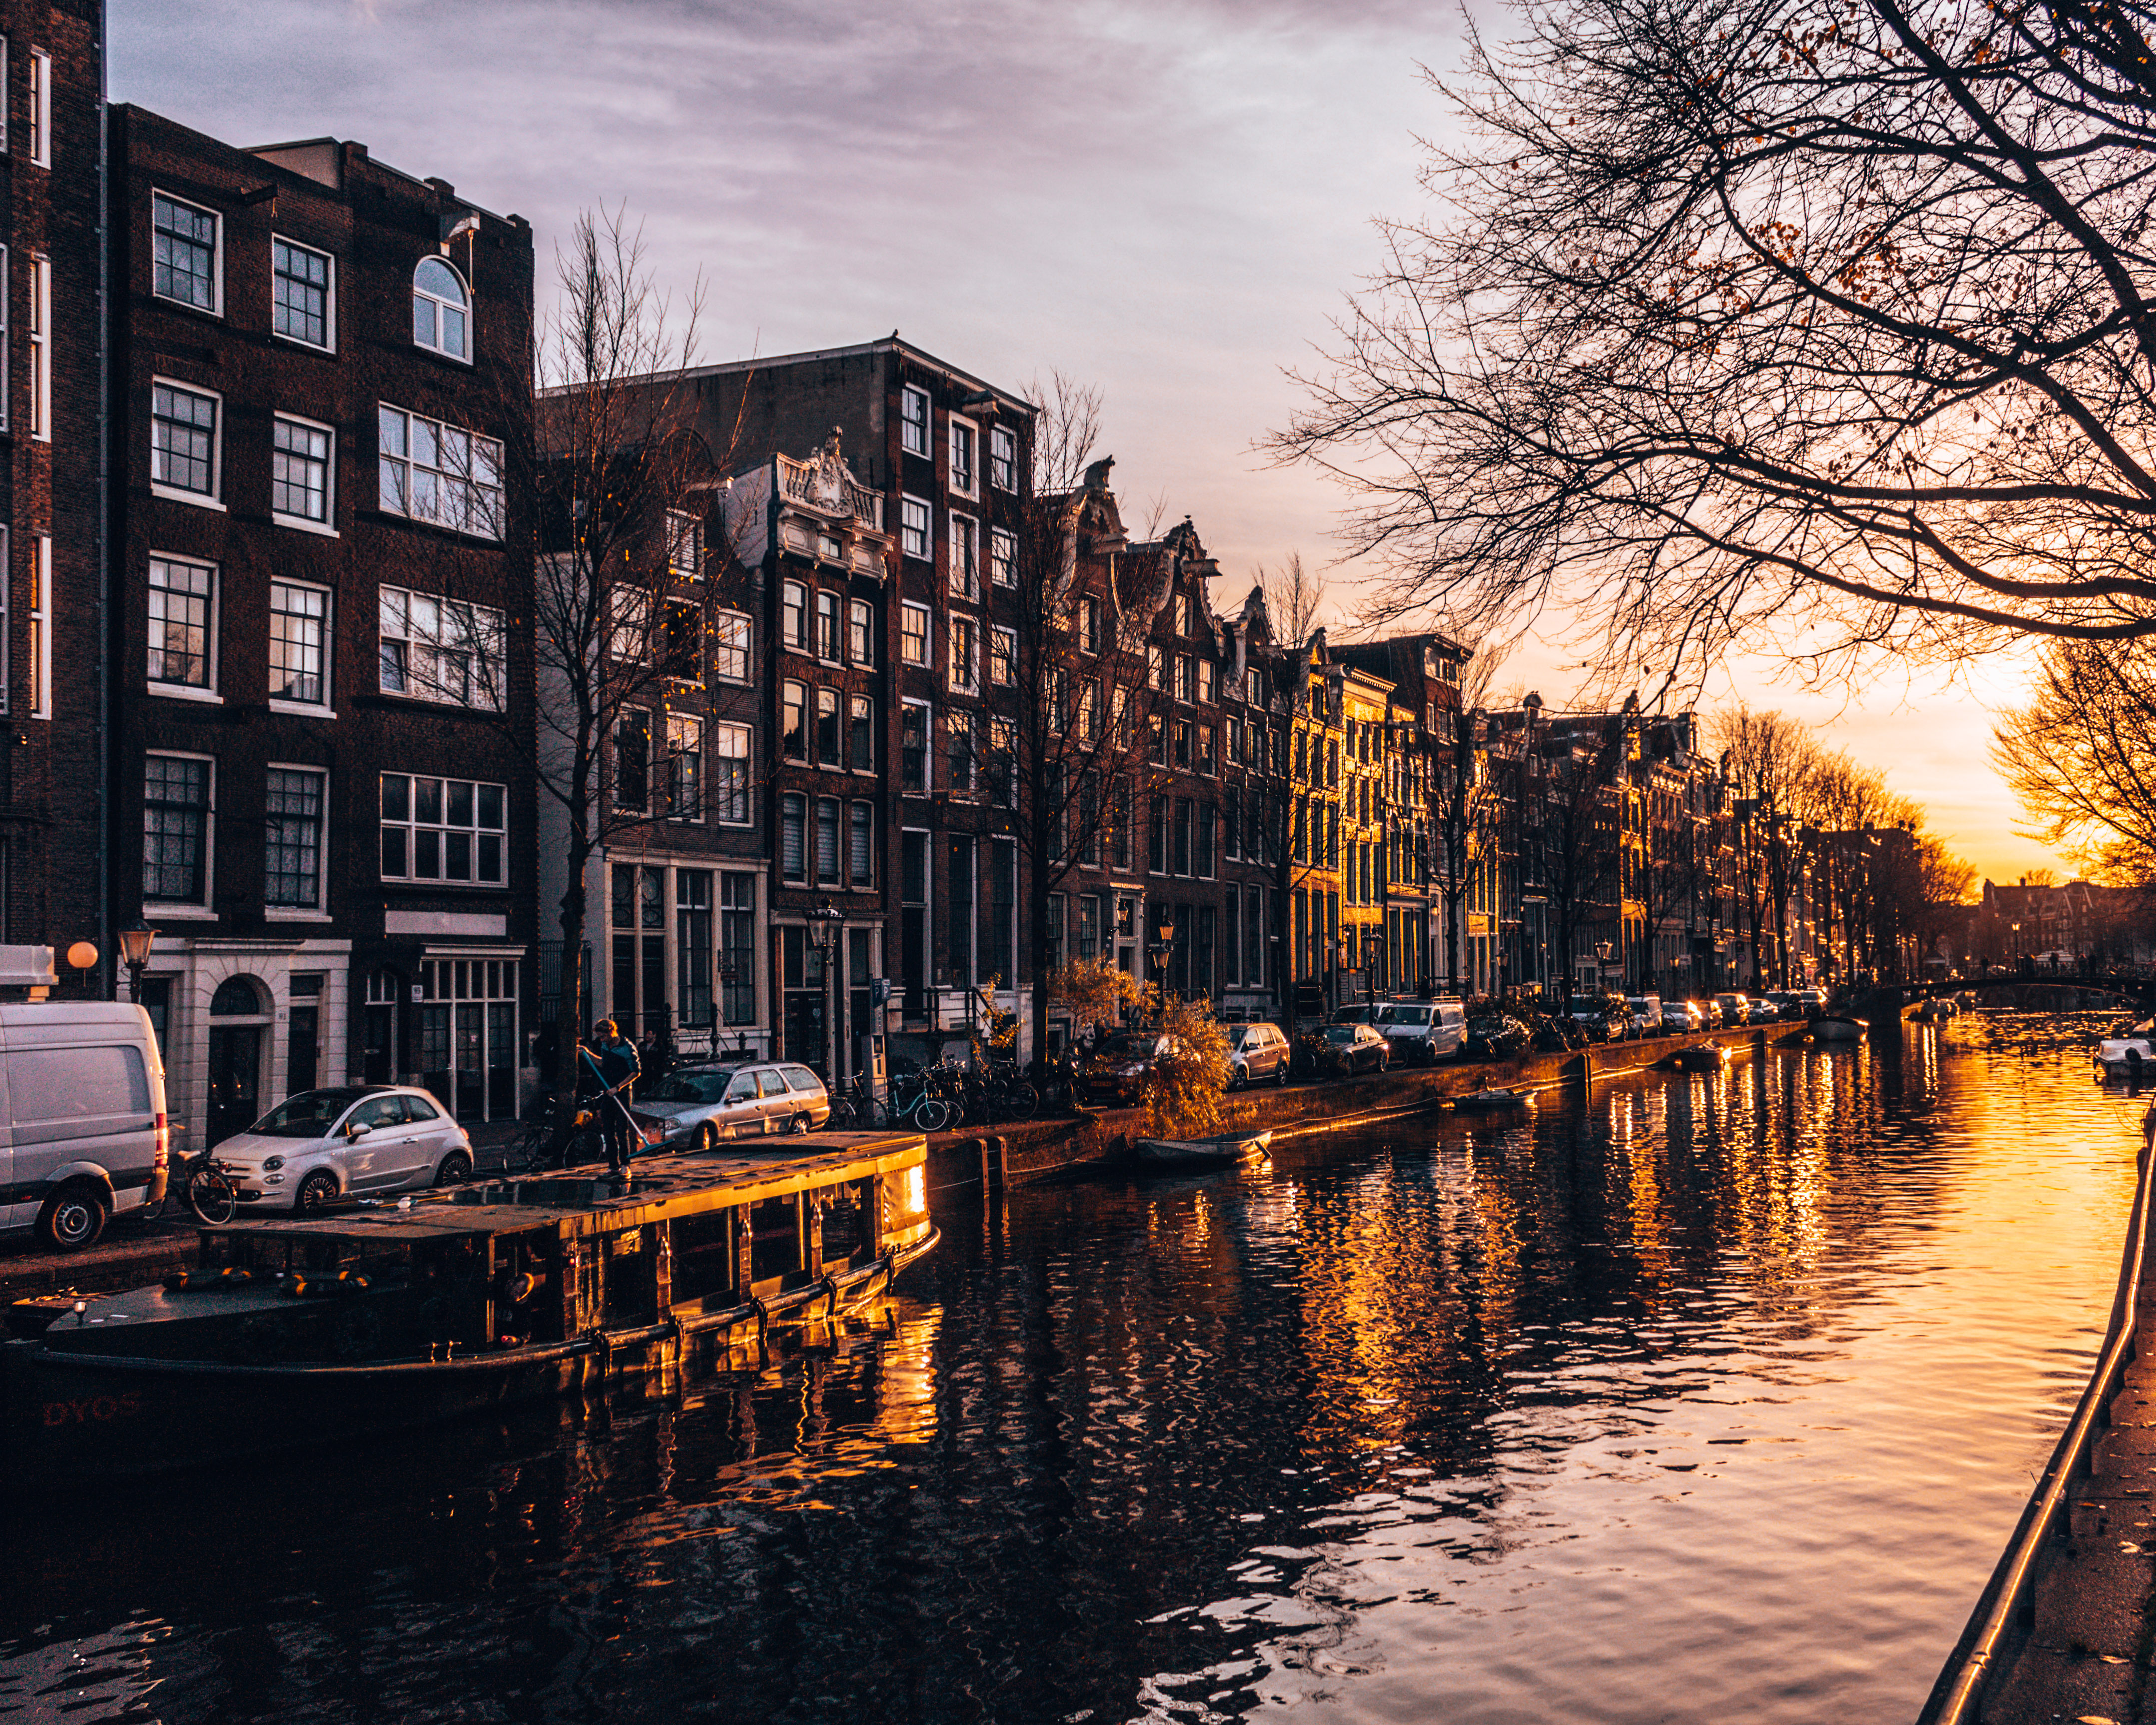 The sun sets over the canal in Amsterdam, Netherlands